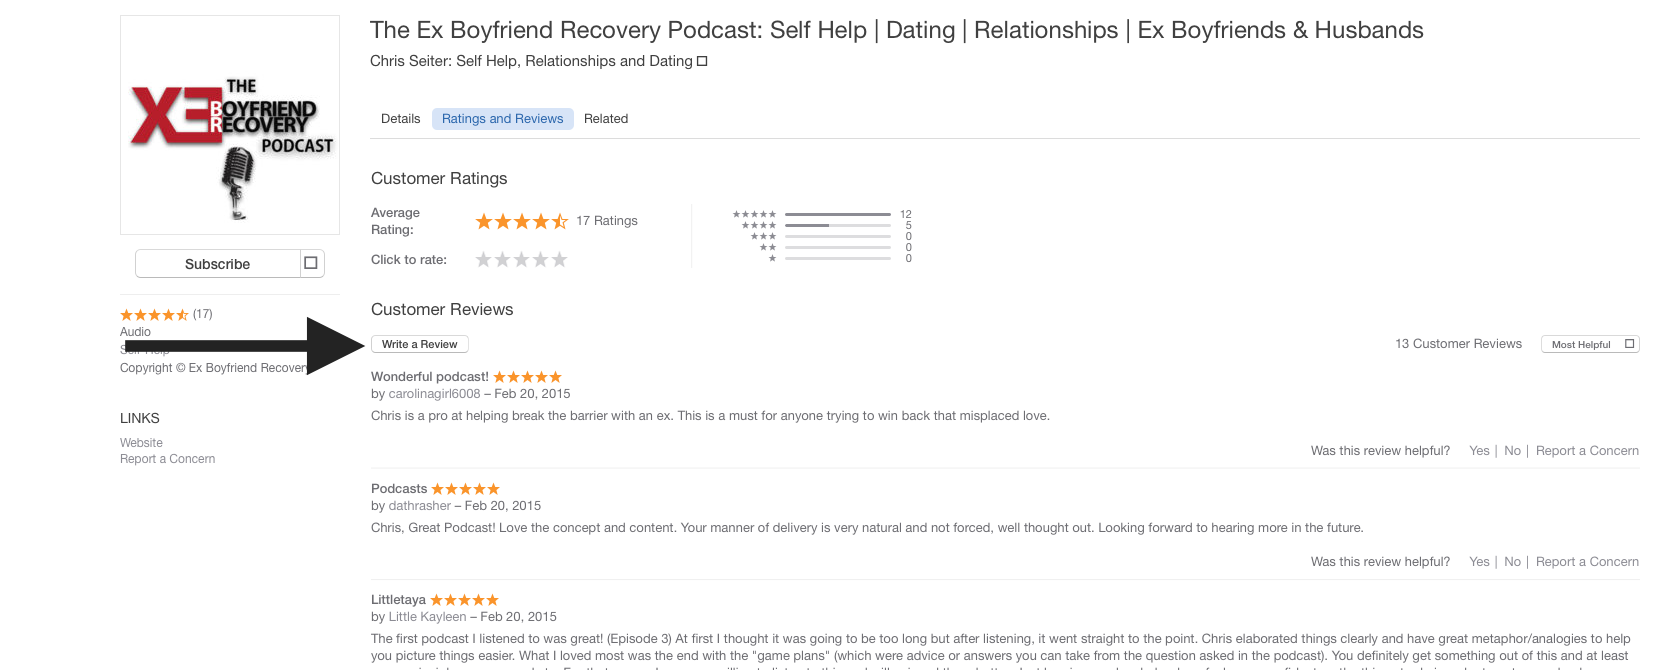 friends with benefits website review